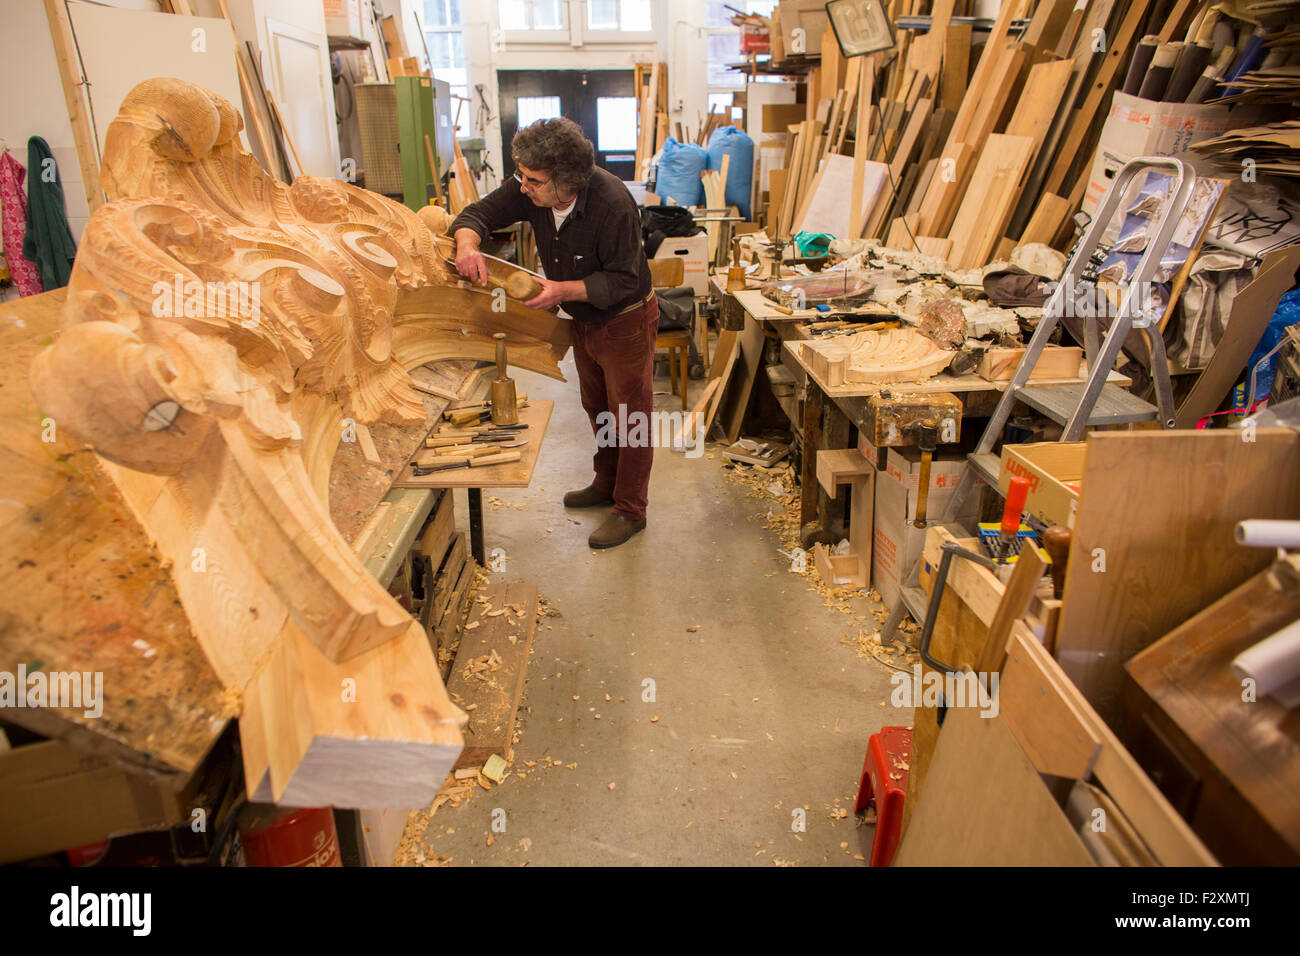 Woodworker making a new house front for a Dutch canal house in Amsterdam - Stock Image